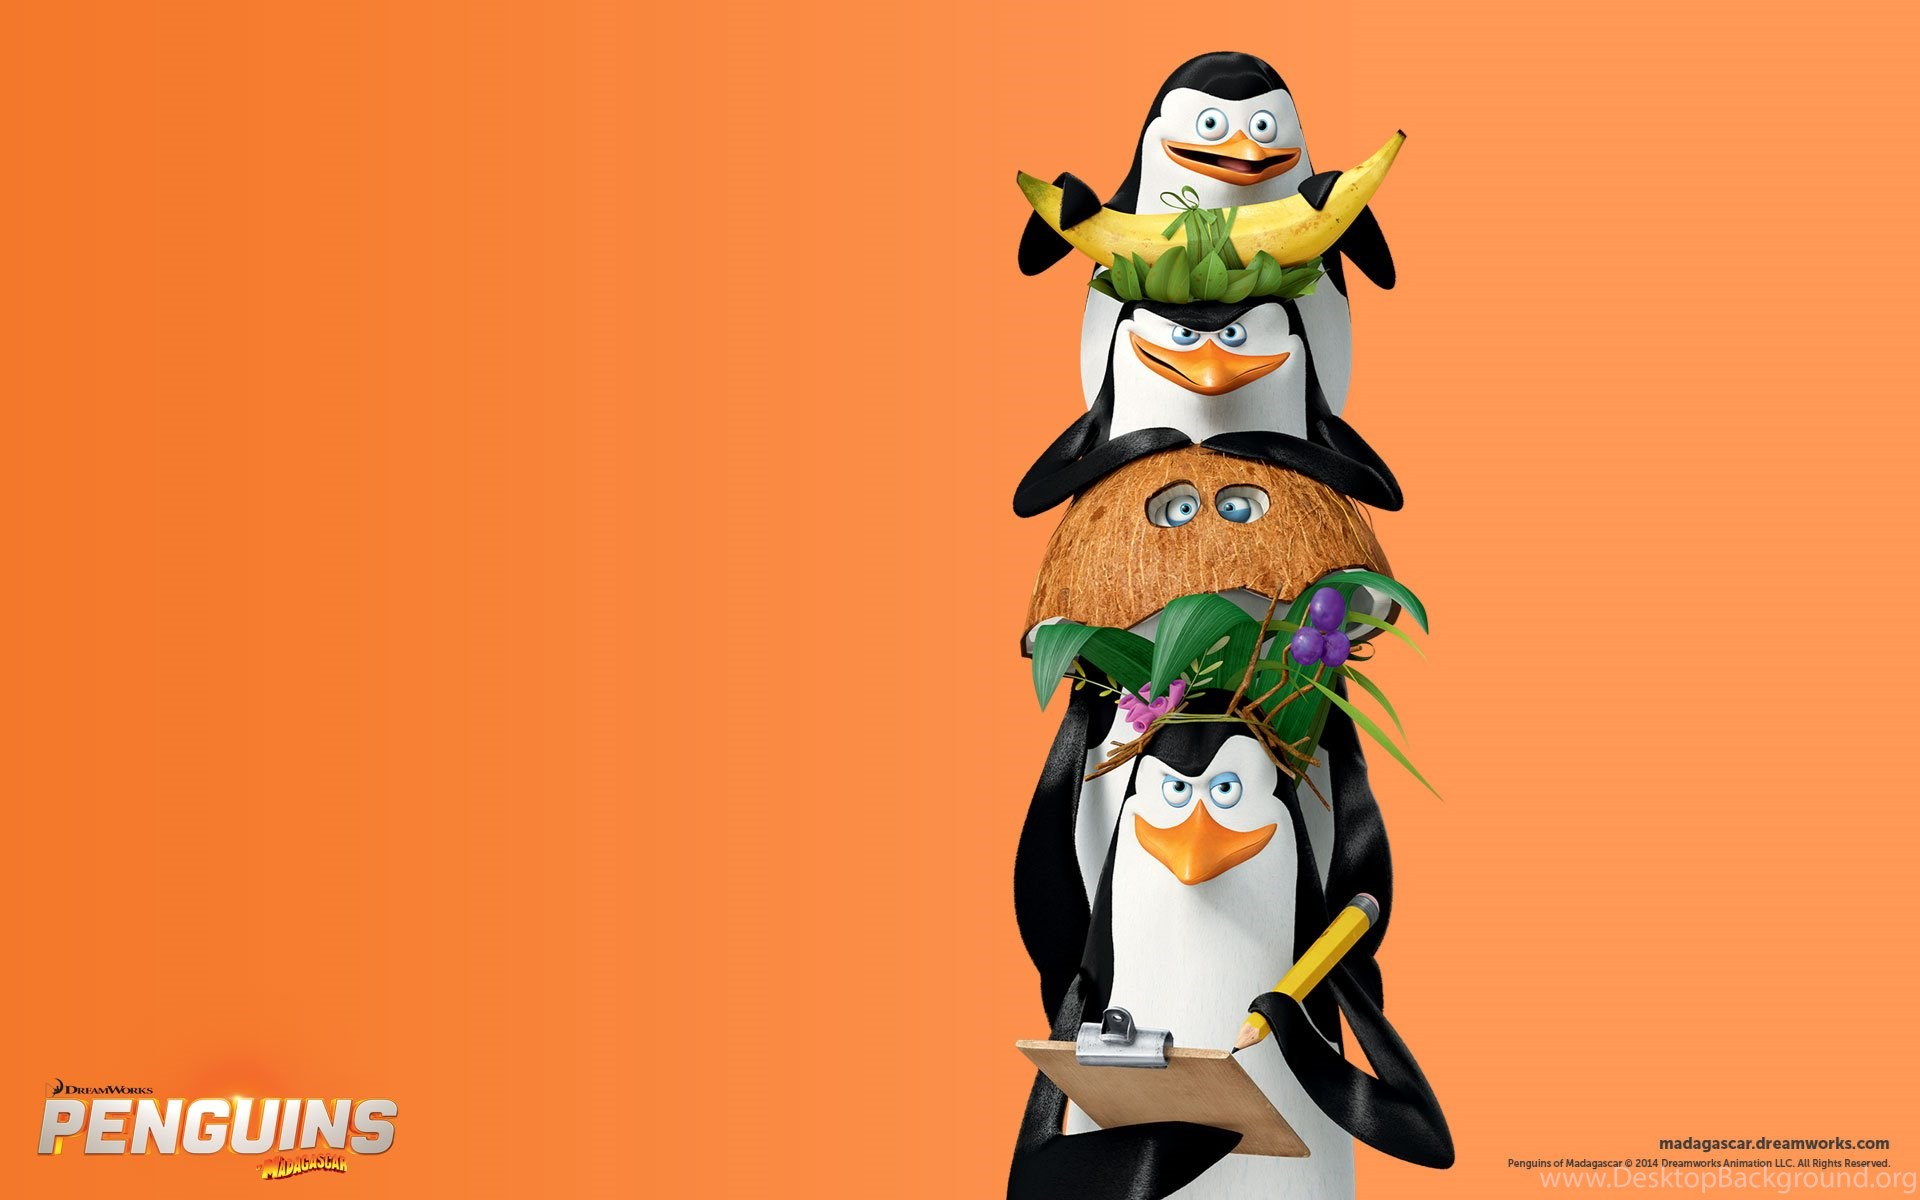 Most Inspiring Wallpaper Movie Penguins Madagascar - 881952_penguins-of-madagascar-hd-wallpapers-and-backgrounds_1920x1200_h  Graphic_591329.jpg